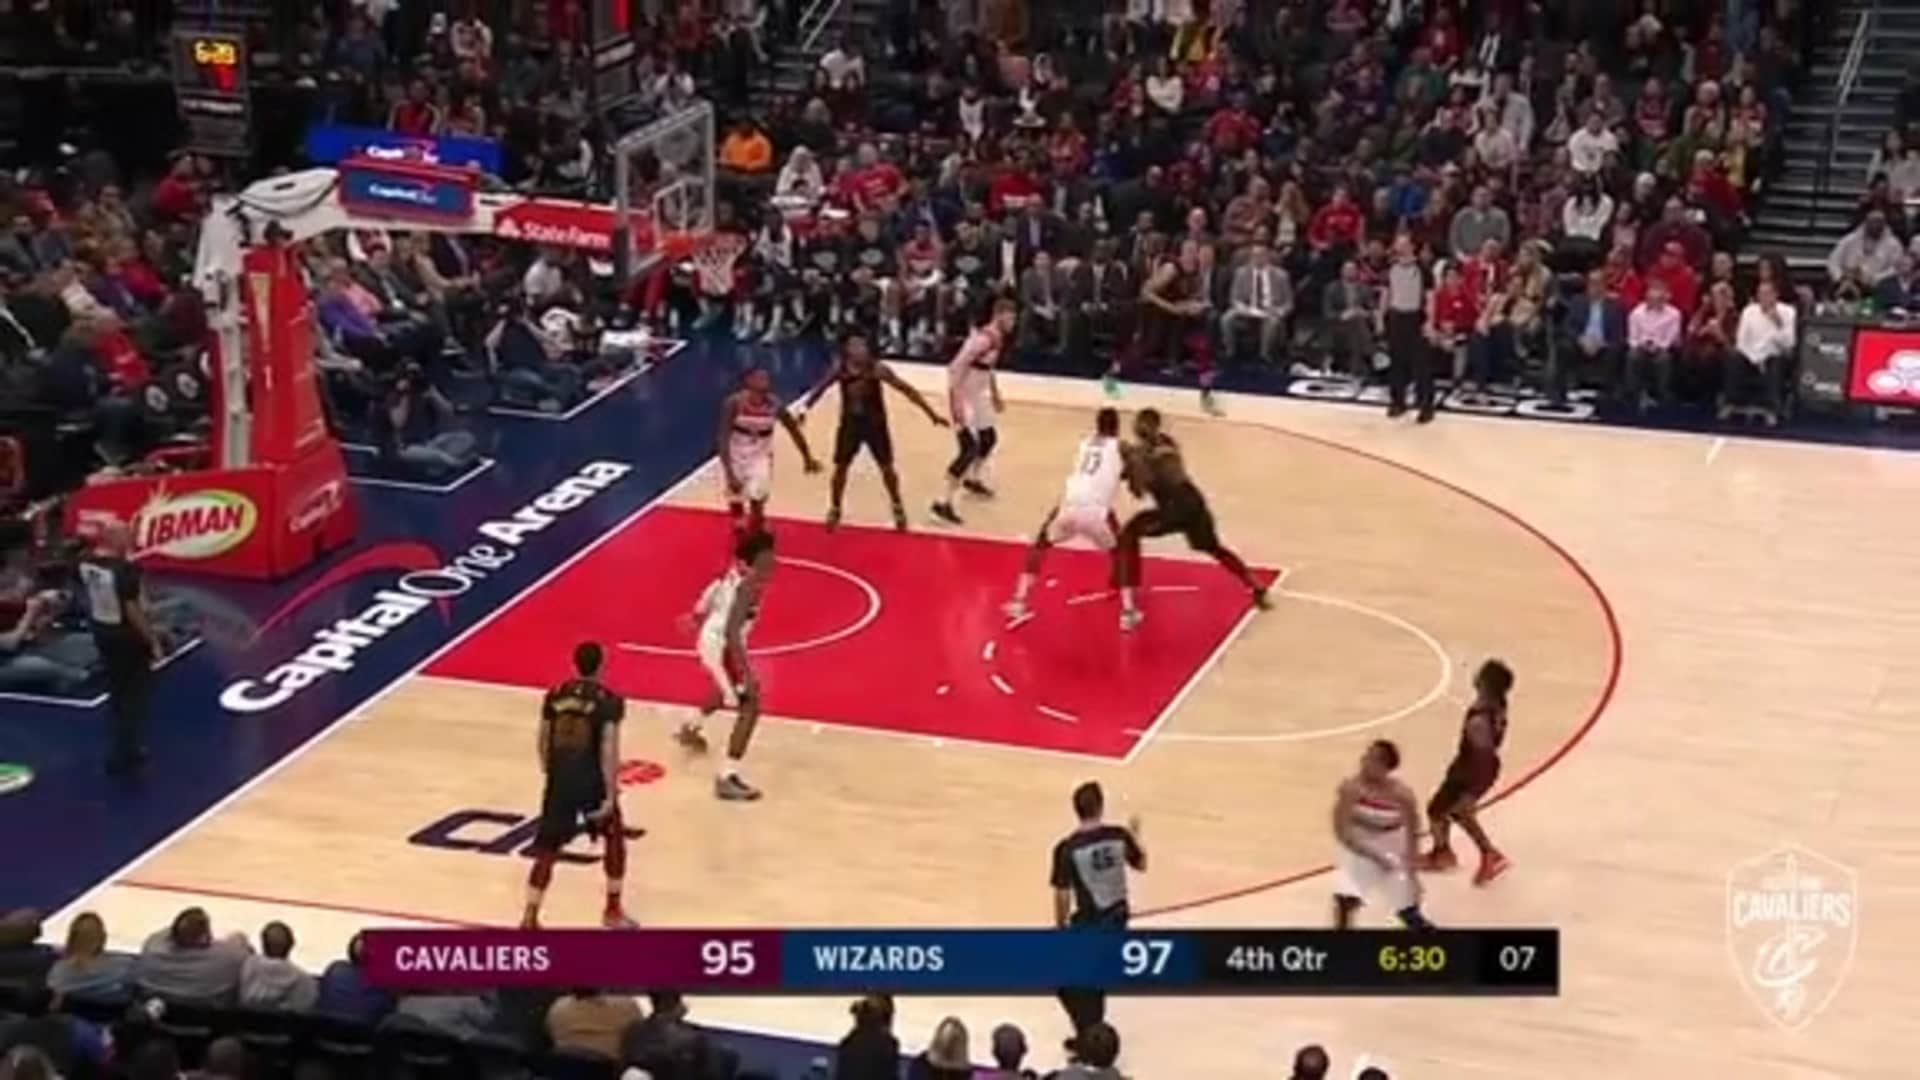 Garland's Three Ball Gives Cavs the Lead